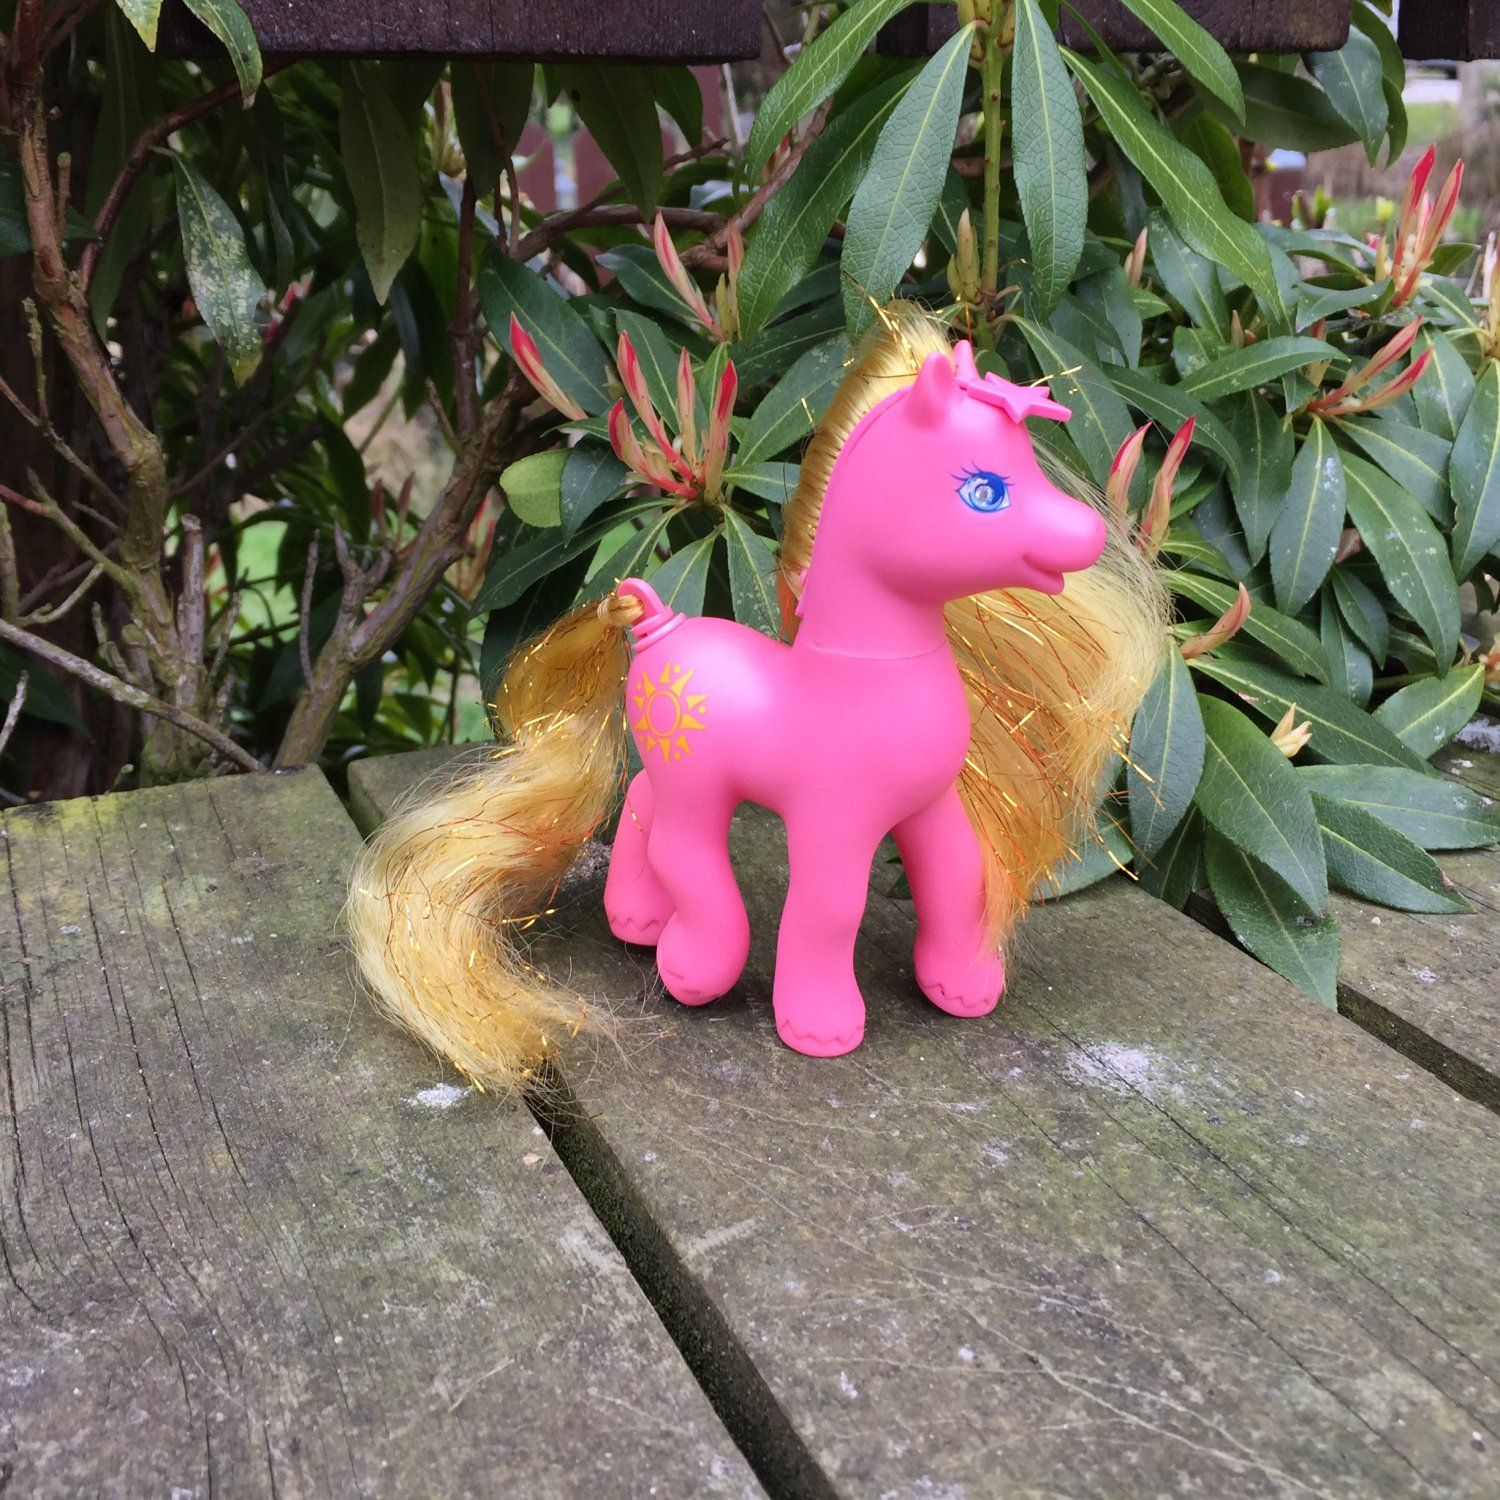 Sunsparkle (Changing Mane and Tail)